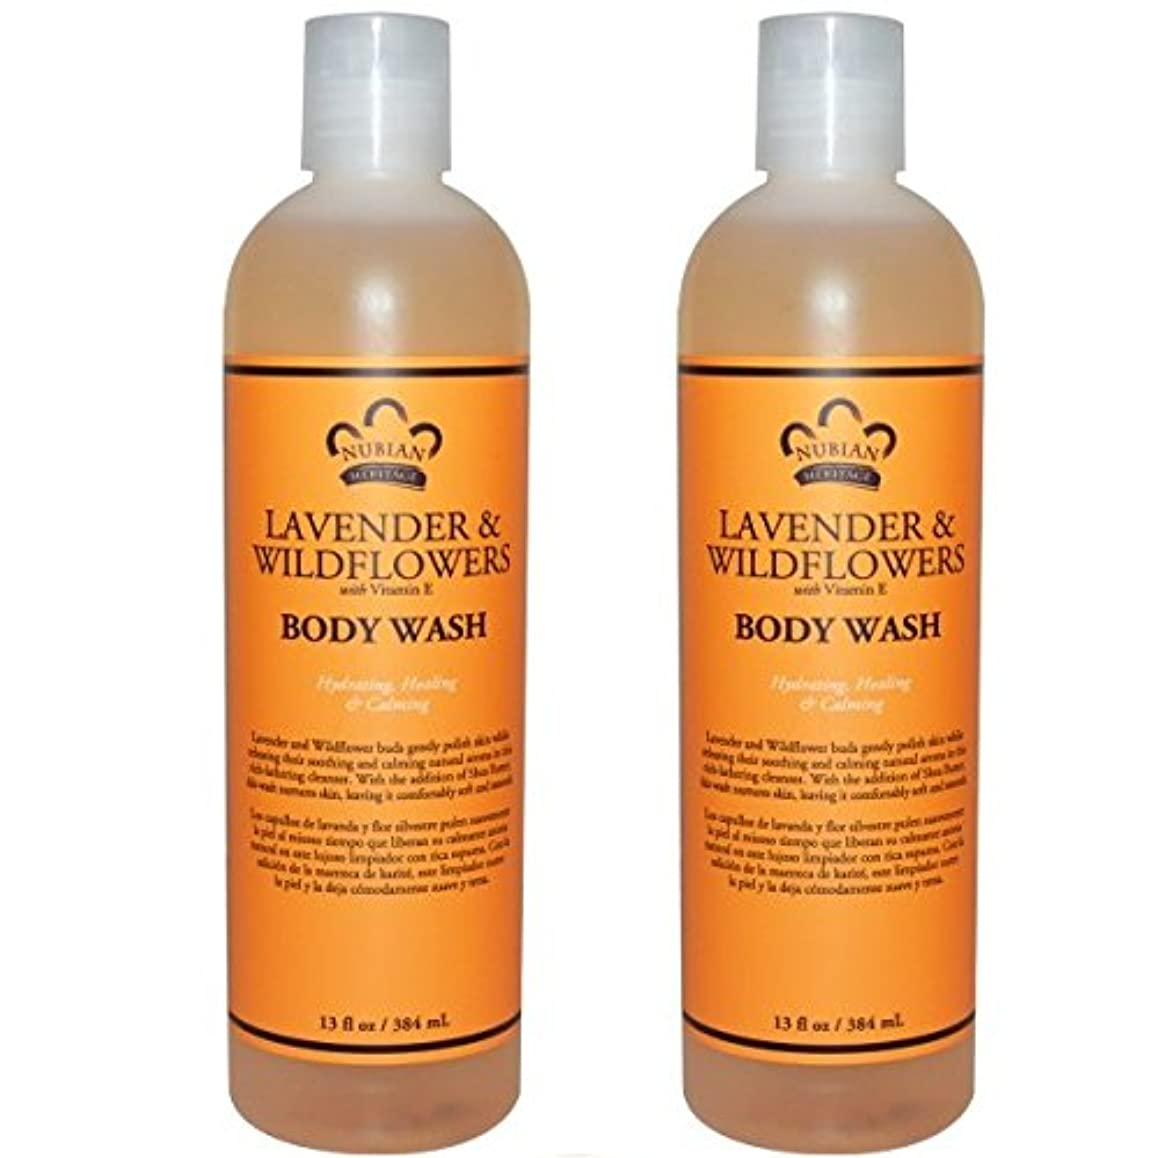 柔和ワイプ重要性【海外直送品】【2本】Nubian Heritage Body Wash Relaxing & Nourishing, Lavender & Wildflowers - 13 fl oz (384 ml)